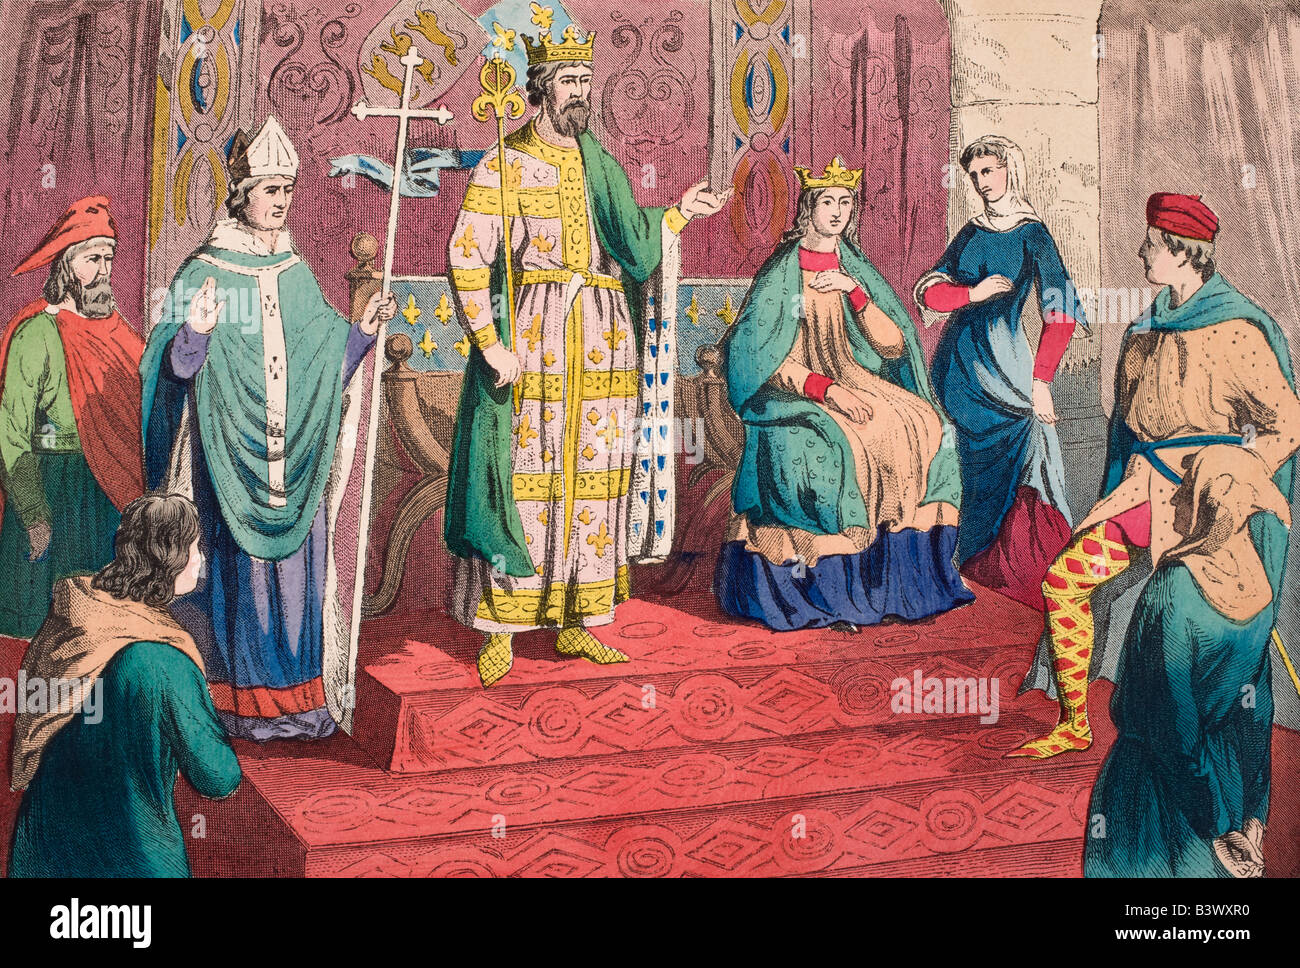 English costumes of the 13th century. From left, gentleman, physician, Bishop, King, Queen, Lady, nobleman, rustic. - Stock Image